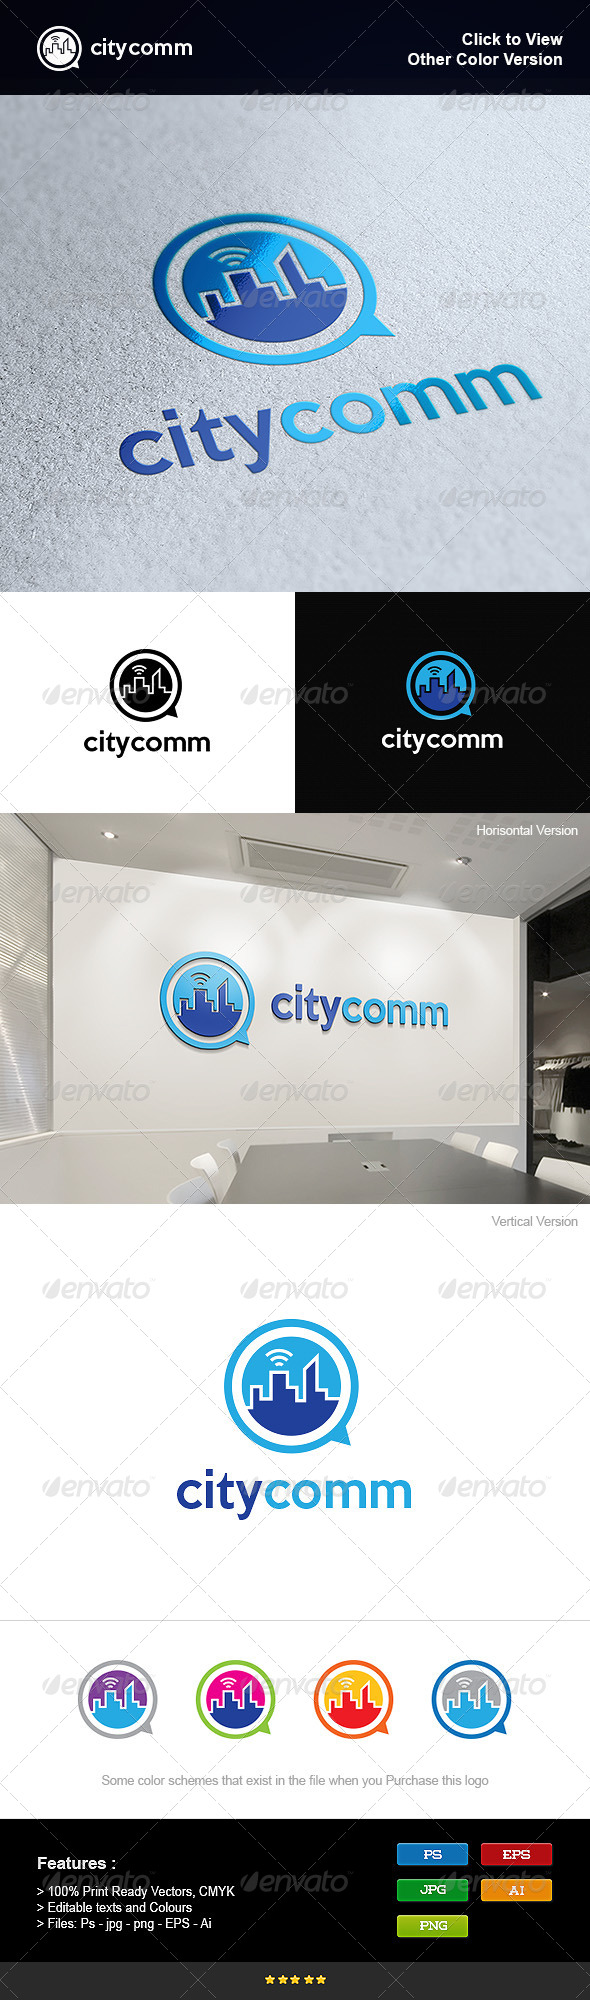 Communications in the City